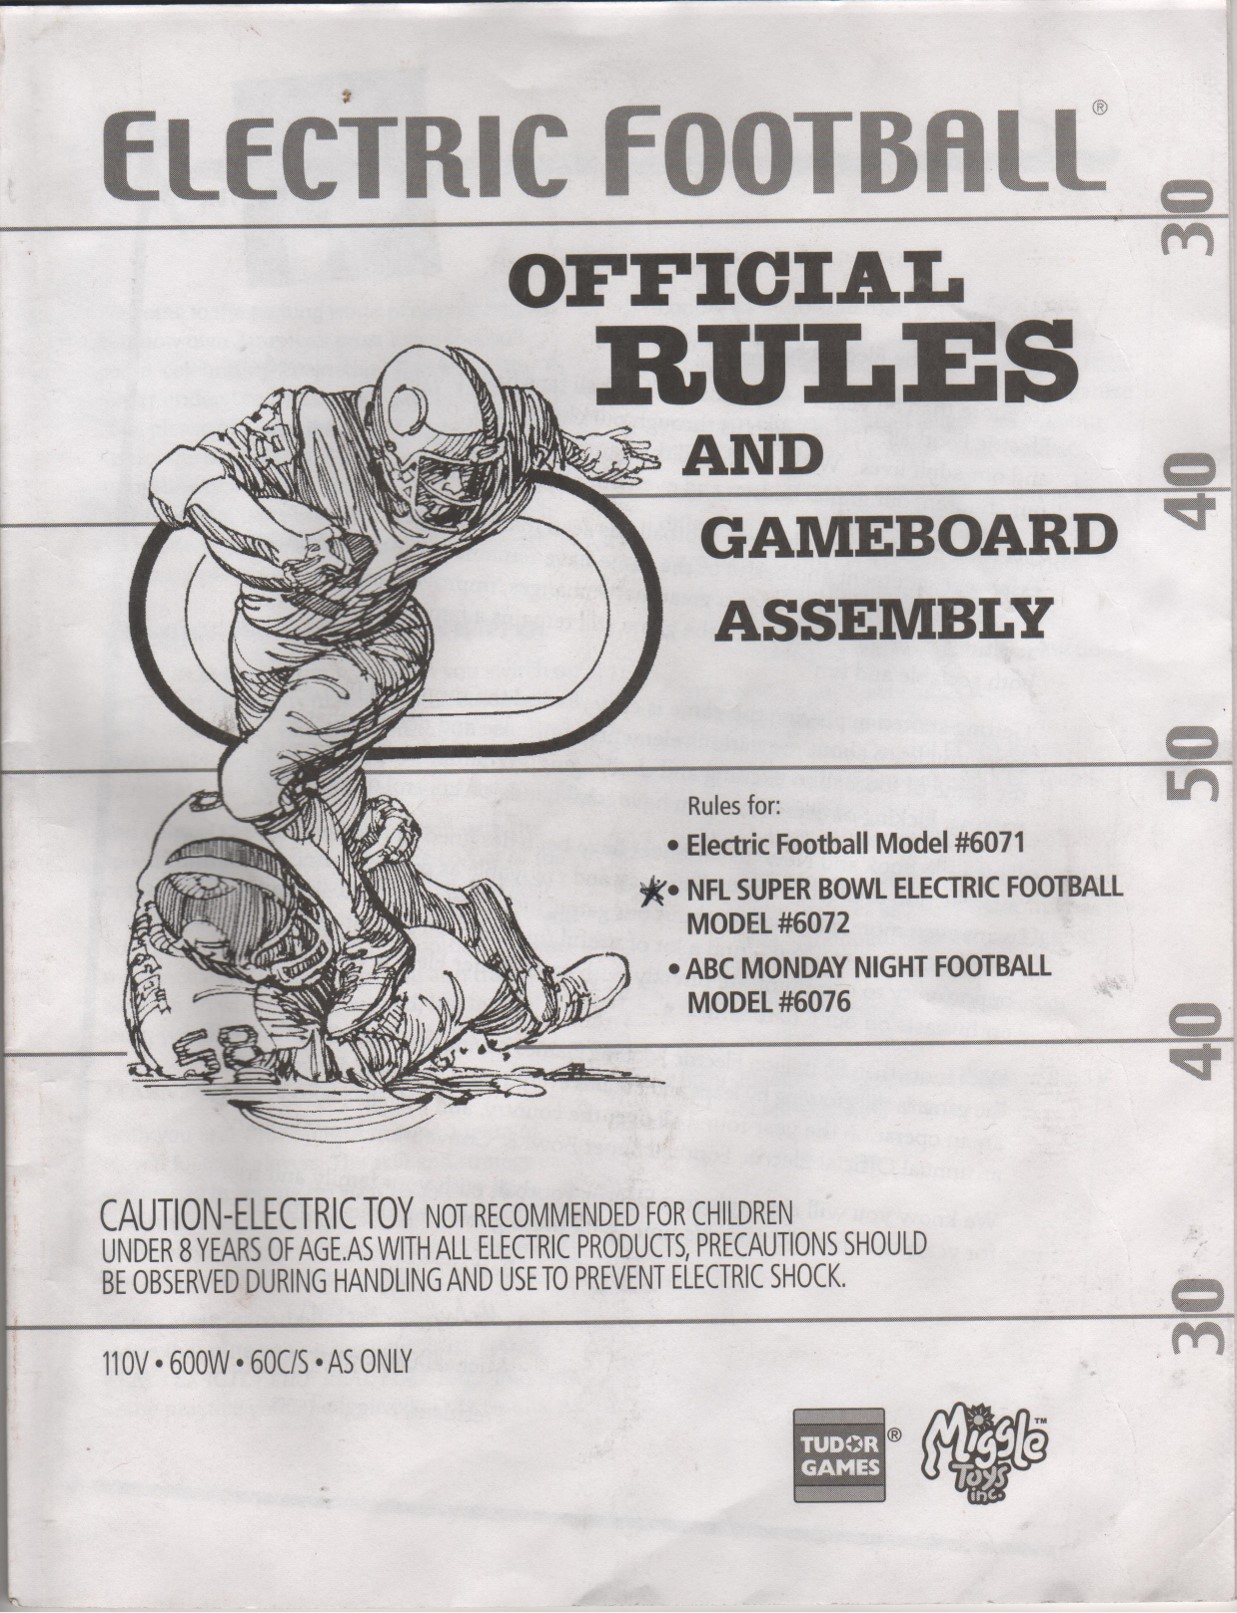 2000 Miggle Toys Rule Book Cover